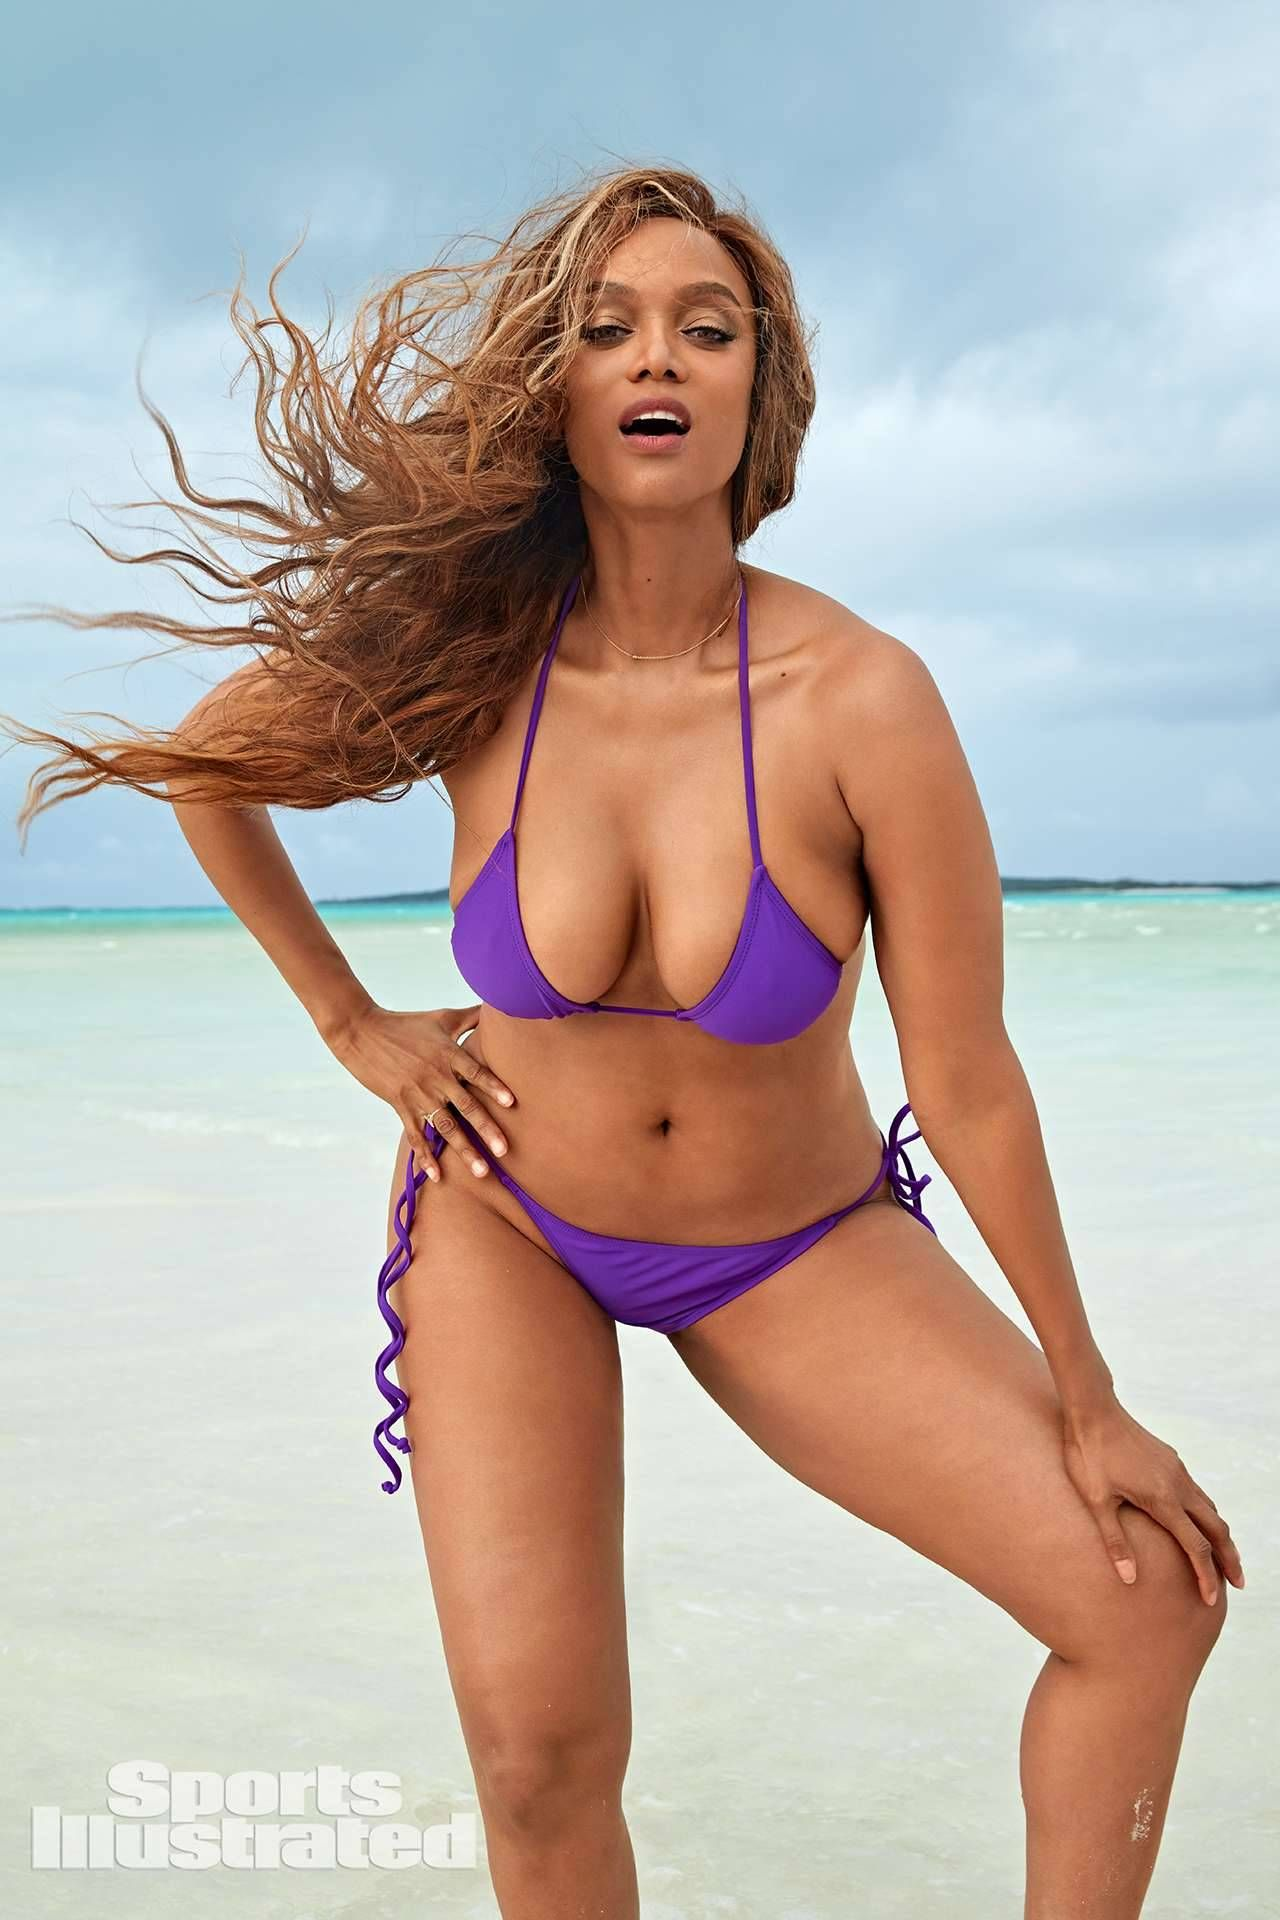 Tyra Banks For Sports Illustrated Swimsuit Issue 2019 Laretta Houston Great Swimsuit Issue Sports Illustrated Swimsuit Sports Illustrated Swimsuit Issue